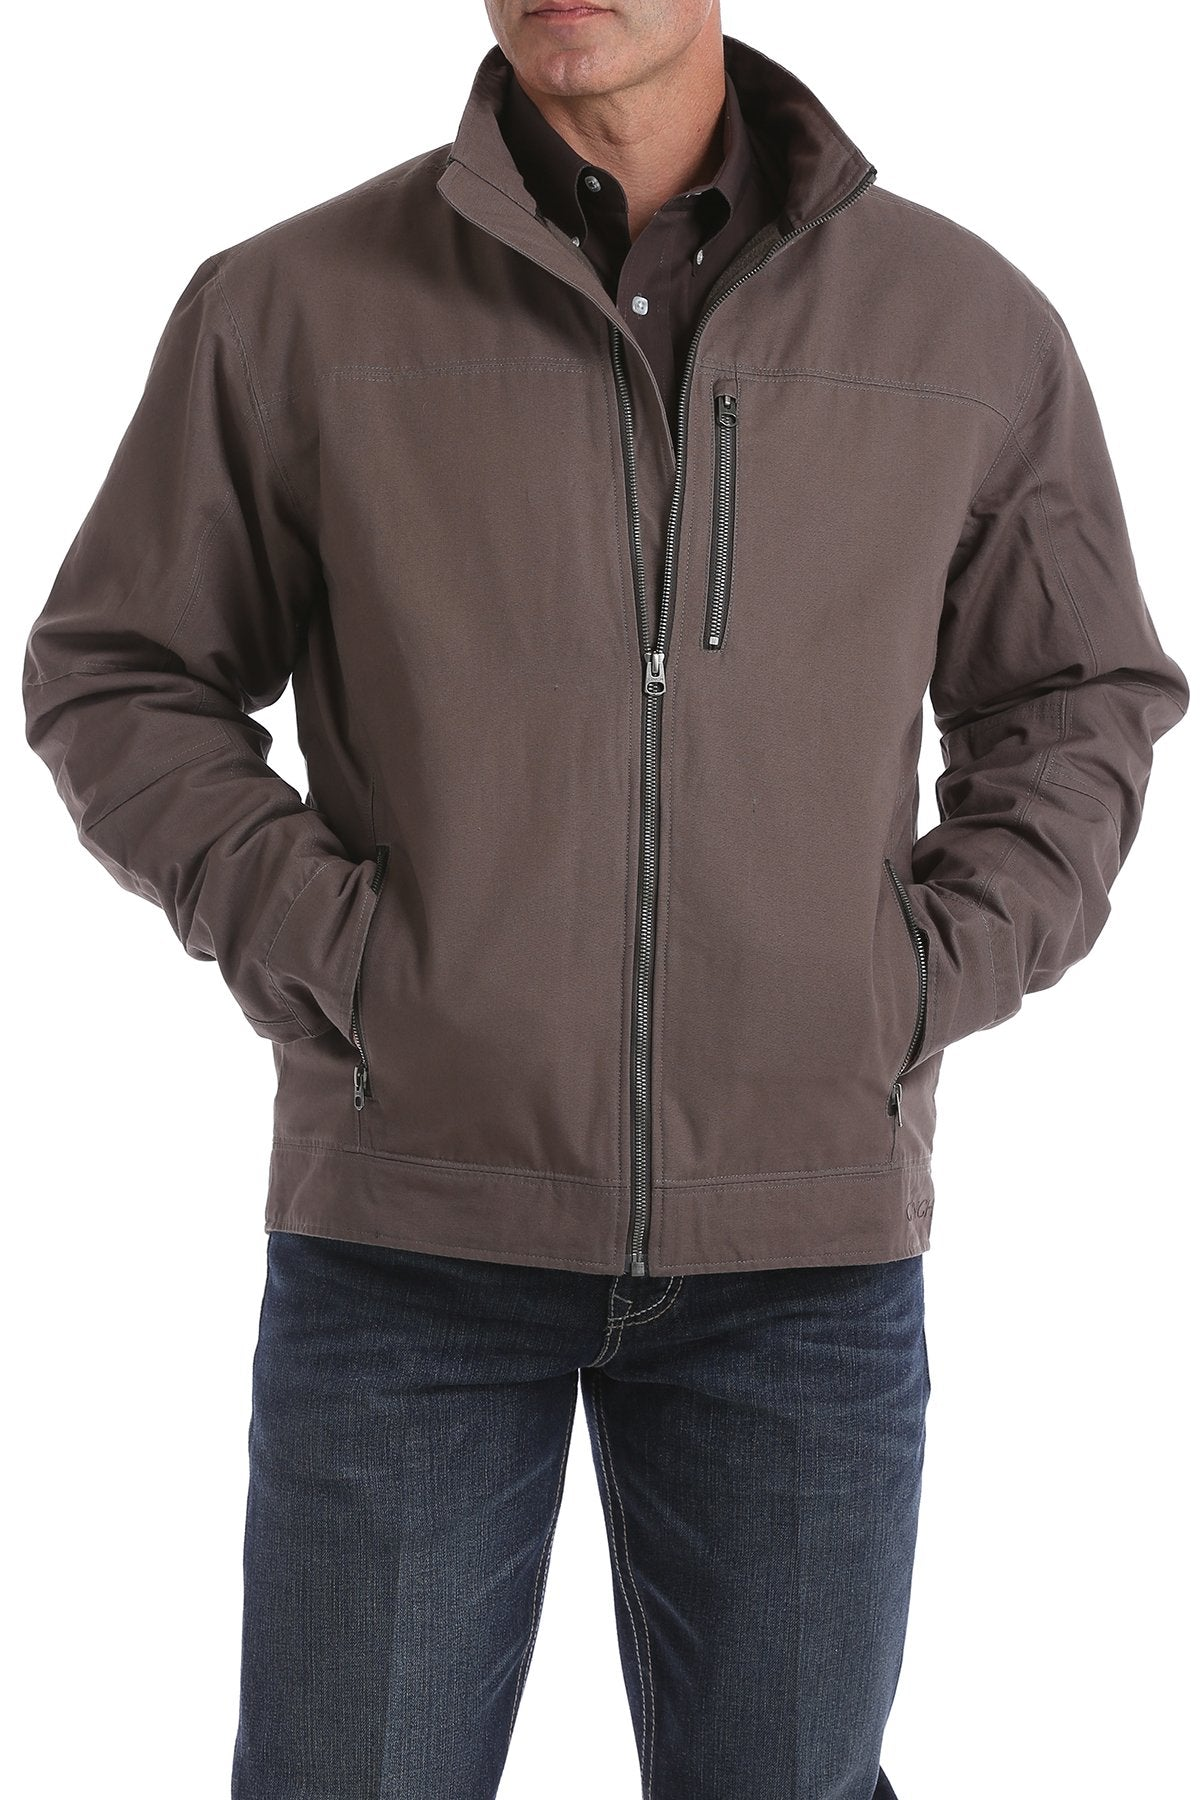 Cinch Men's Brown Concealed Carry Canvas Jacket